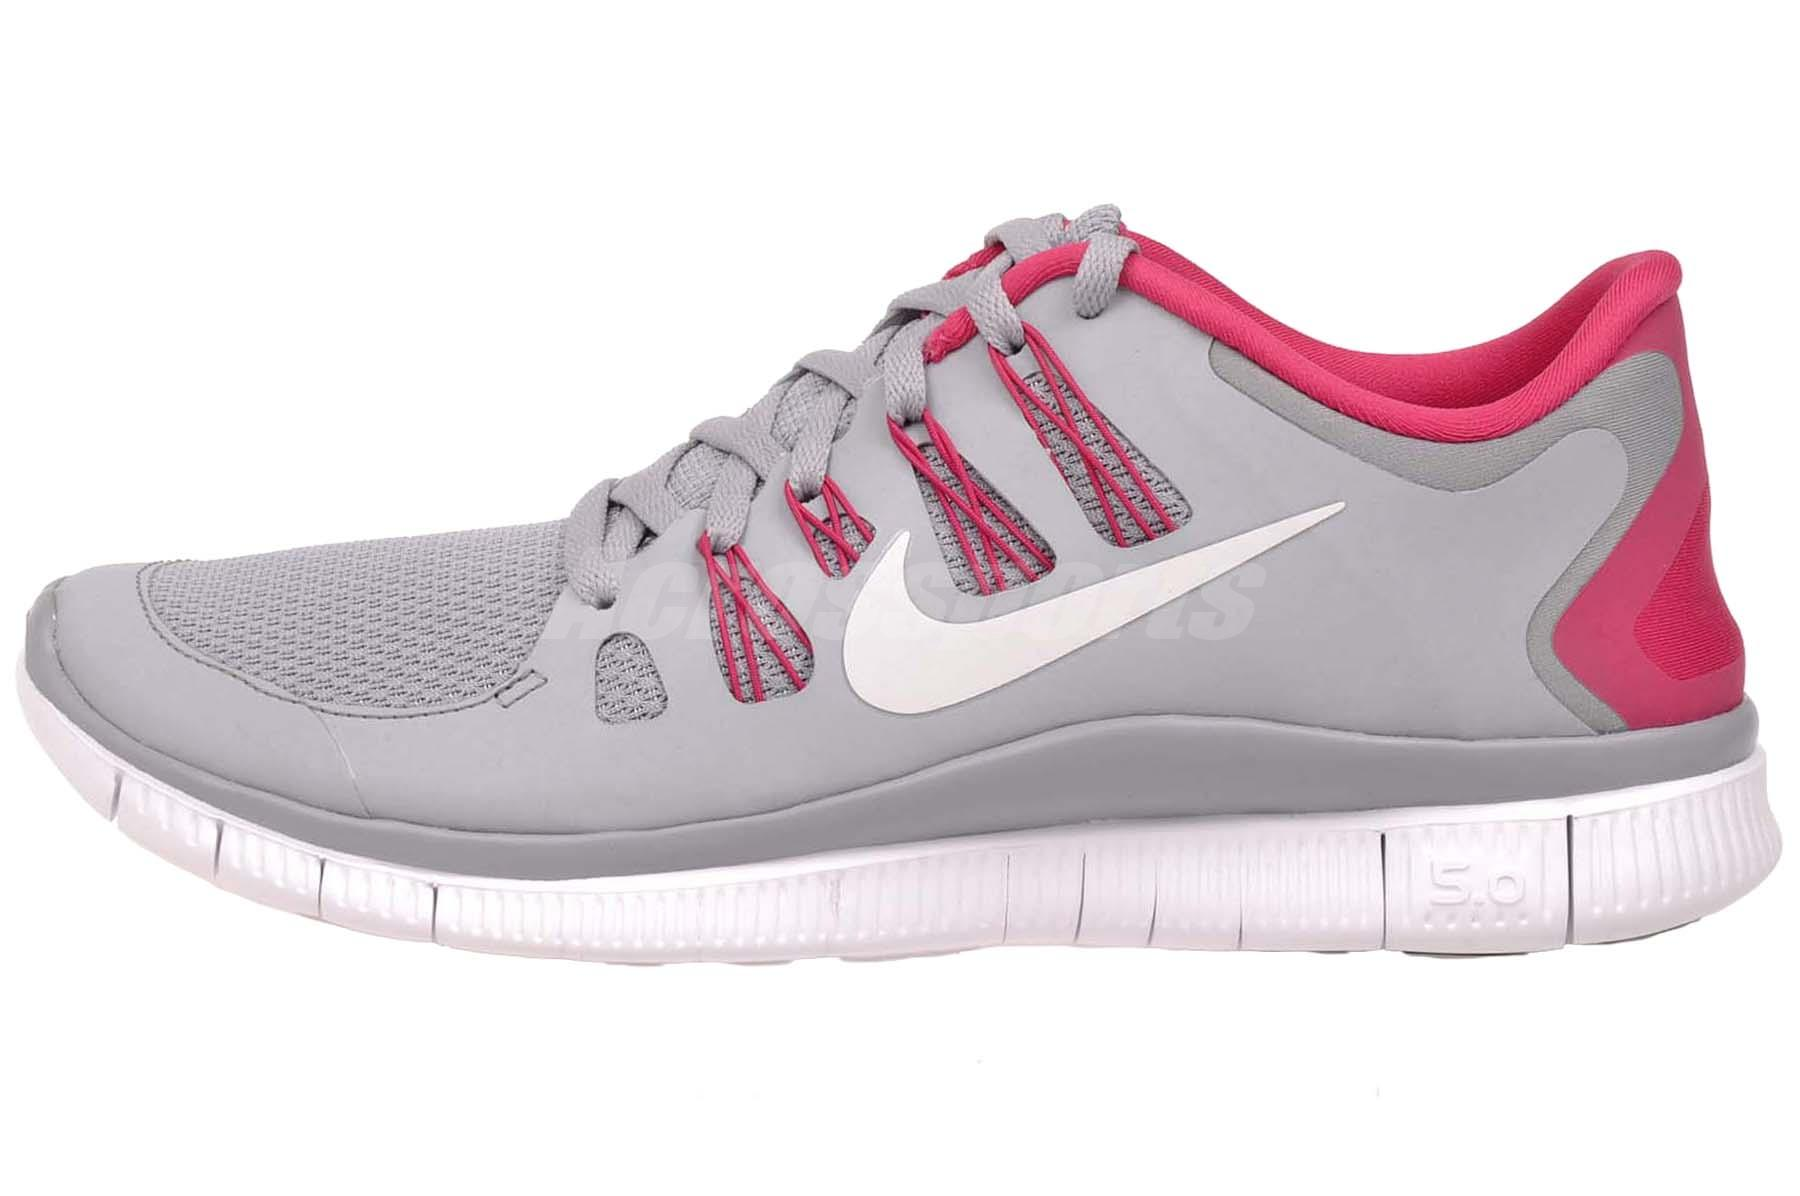 new styles 5511d 7b9c2 Nike Wmns Free 5.0 Womens 2016 Running Shoes Sneakers 580591-061 ...